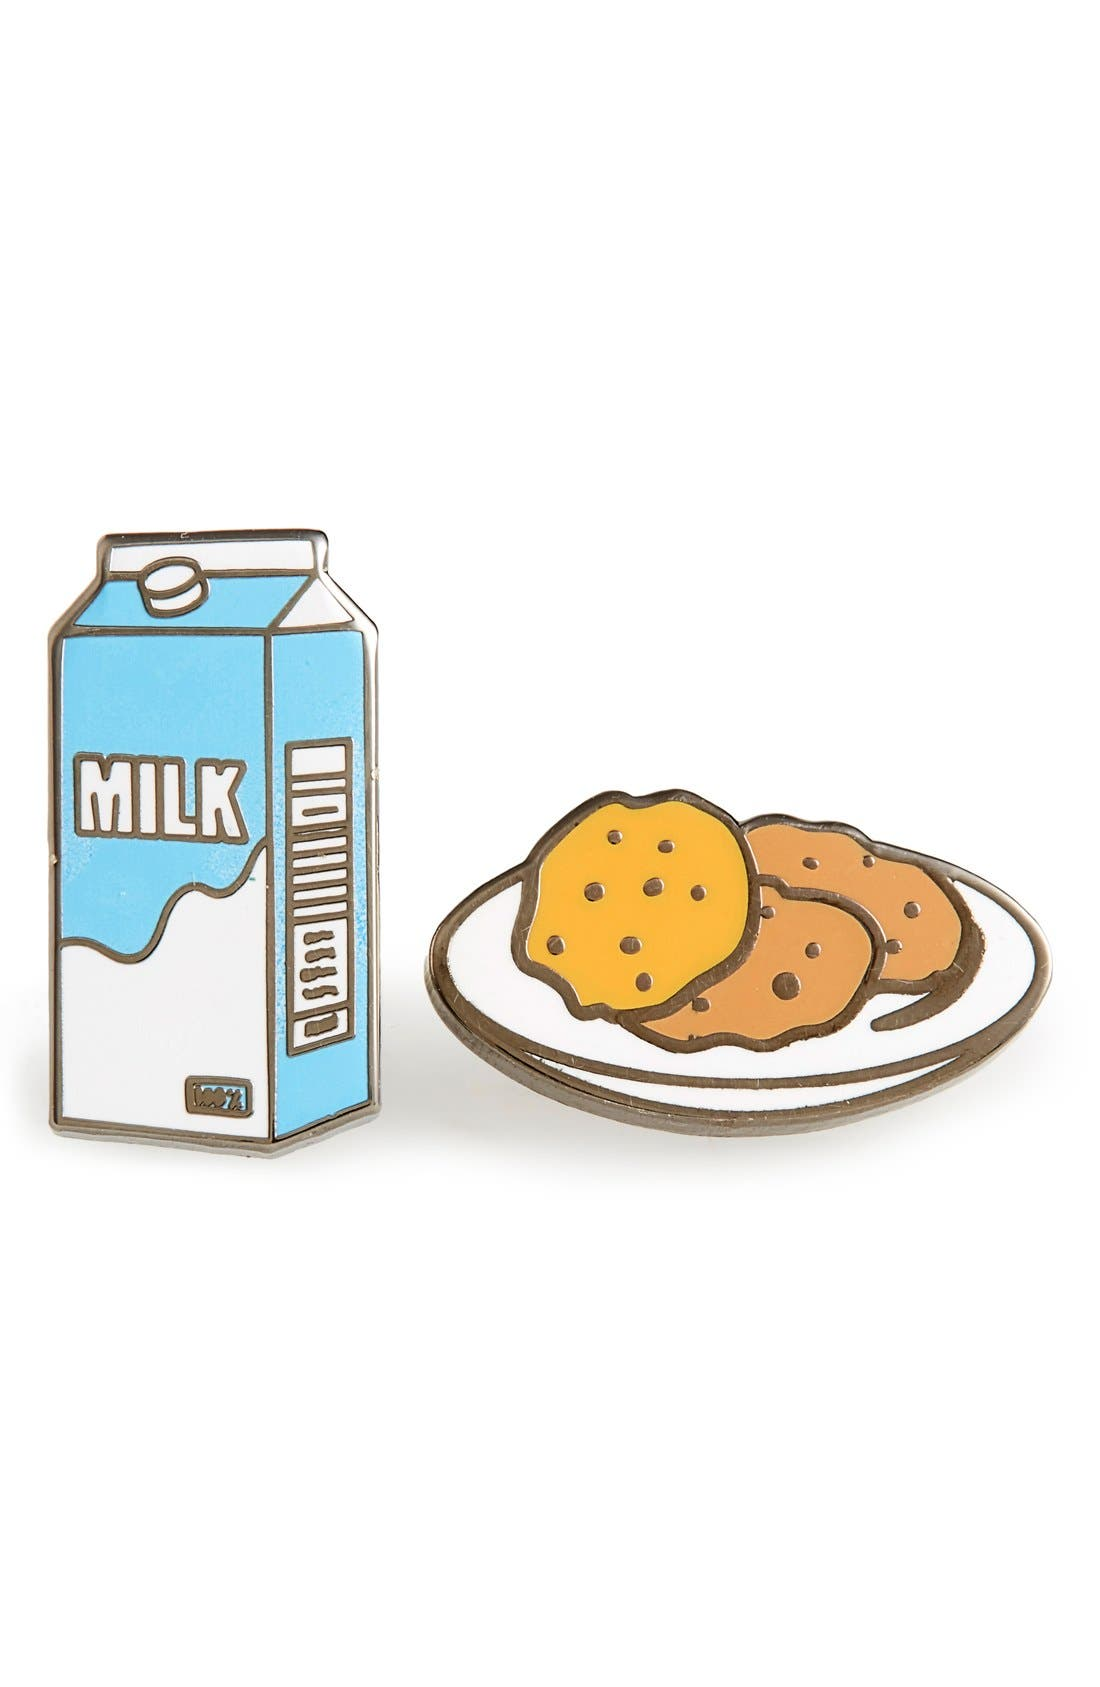 Main Image - PINTRILL 'Milk & Cookies' Fashion Accessory Pins (Set of 2)